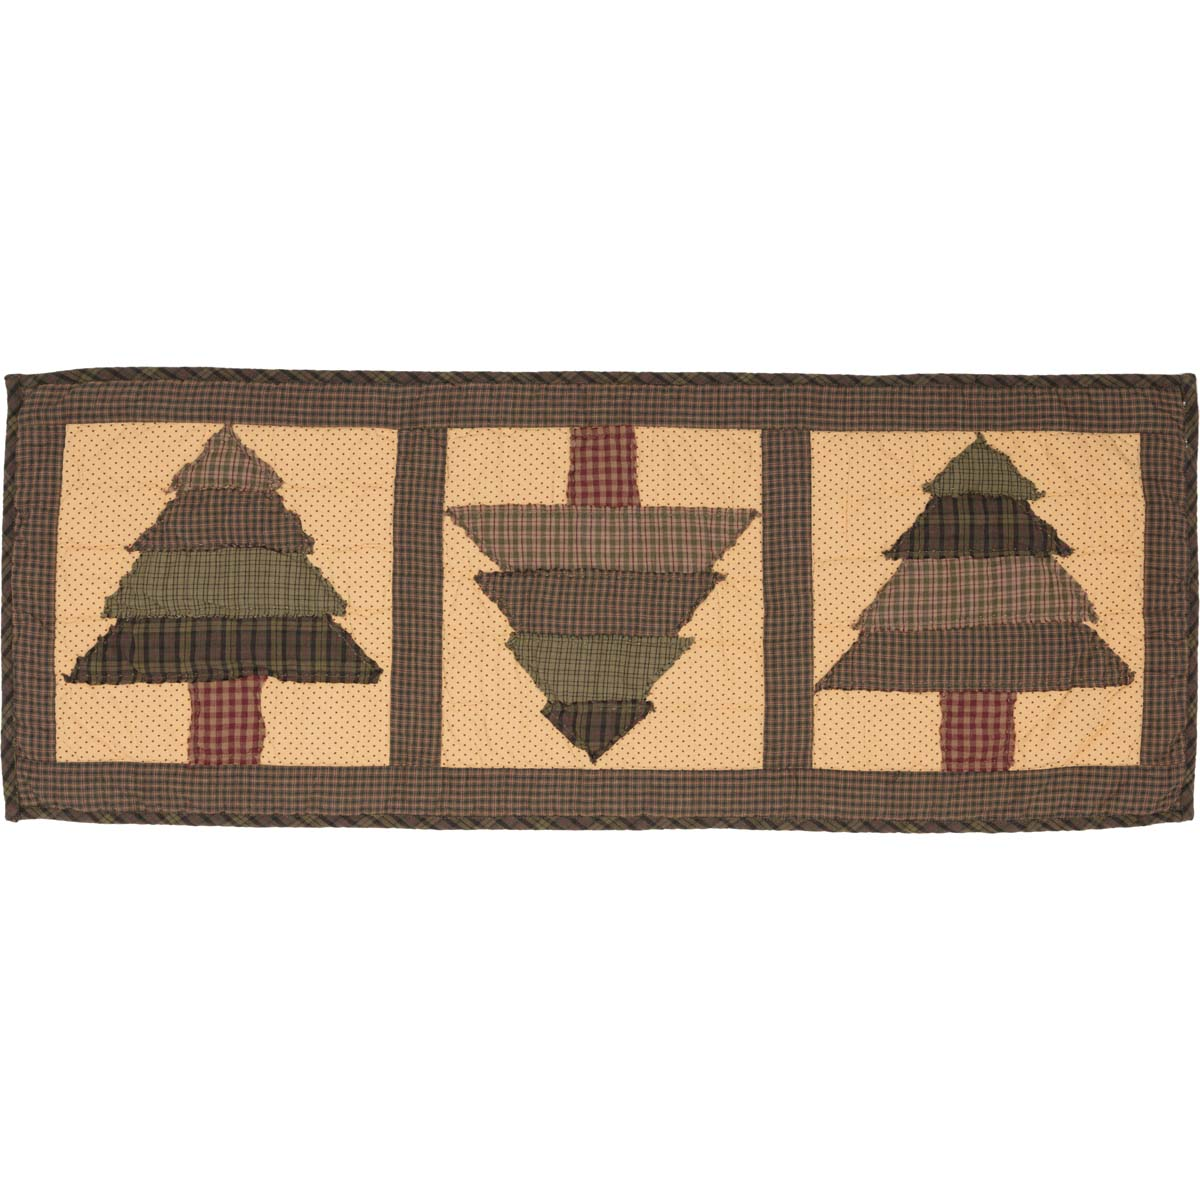 Sequoia Quilted Runner 13x36